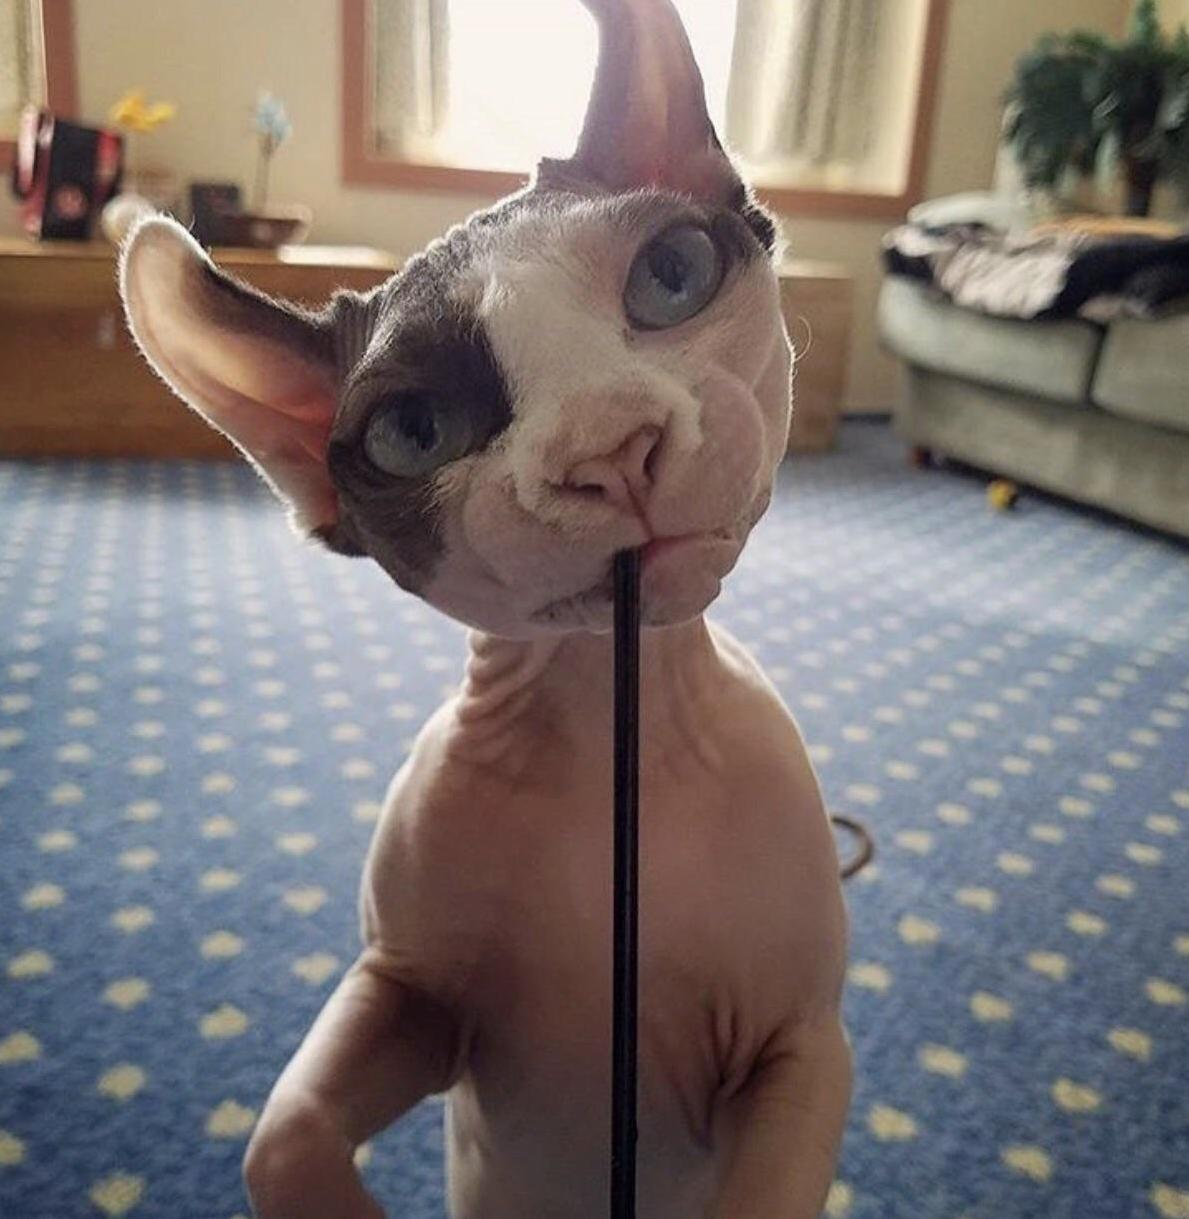 Where can i find sphinx kittens in ct